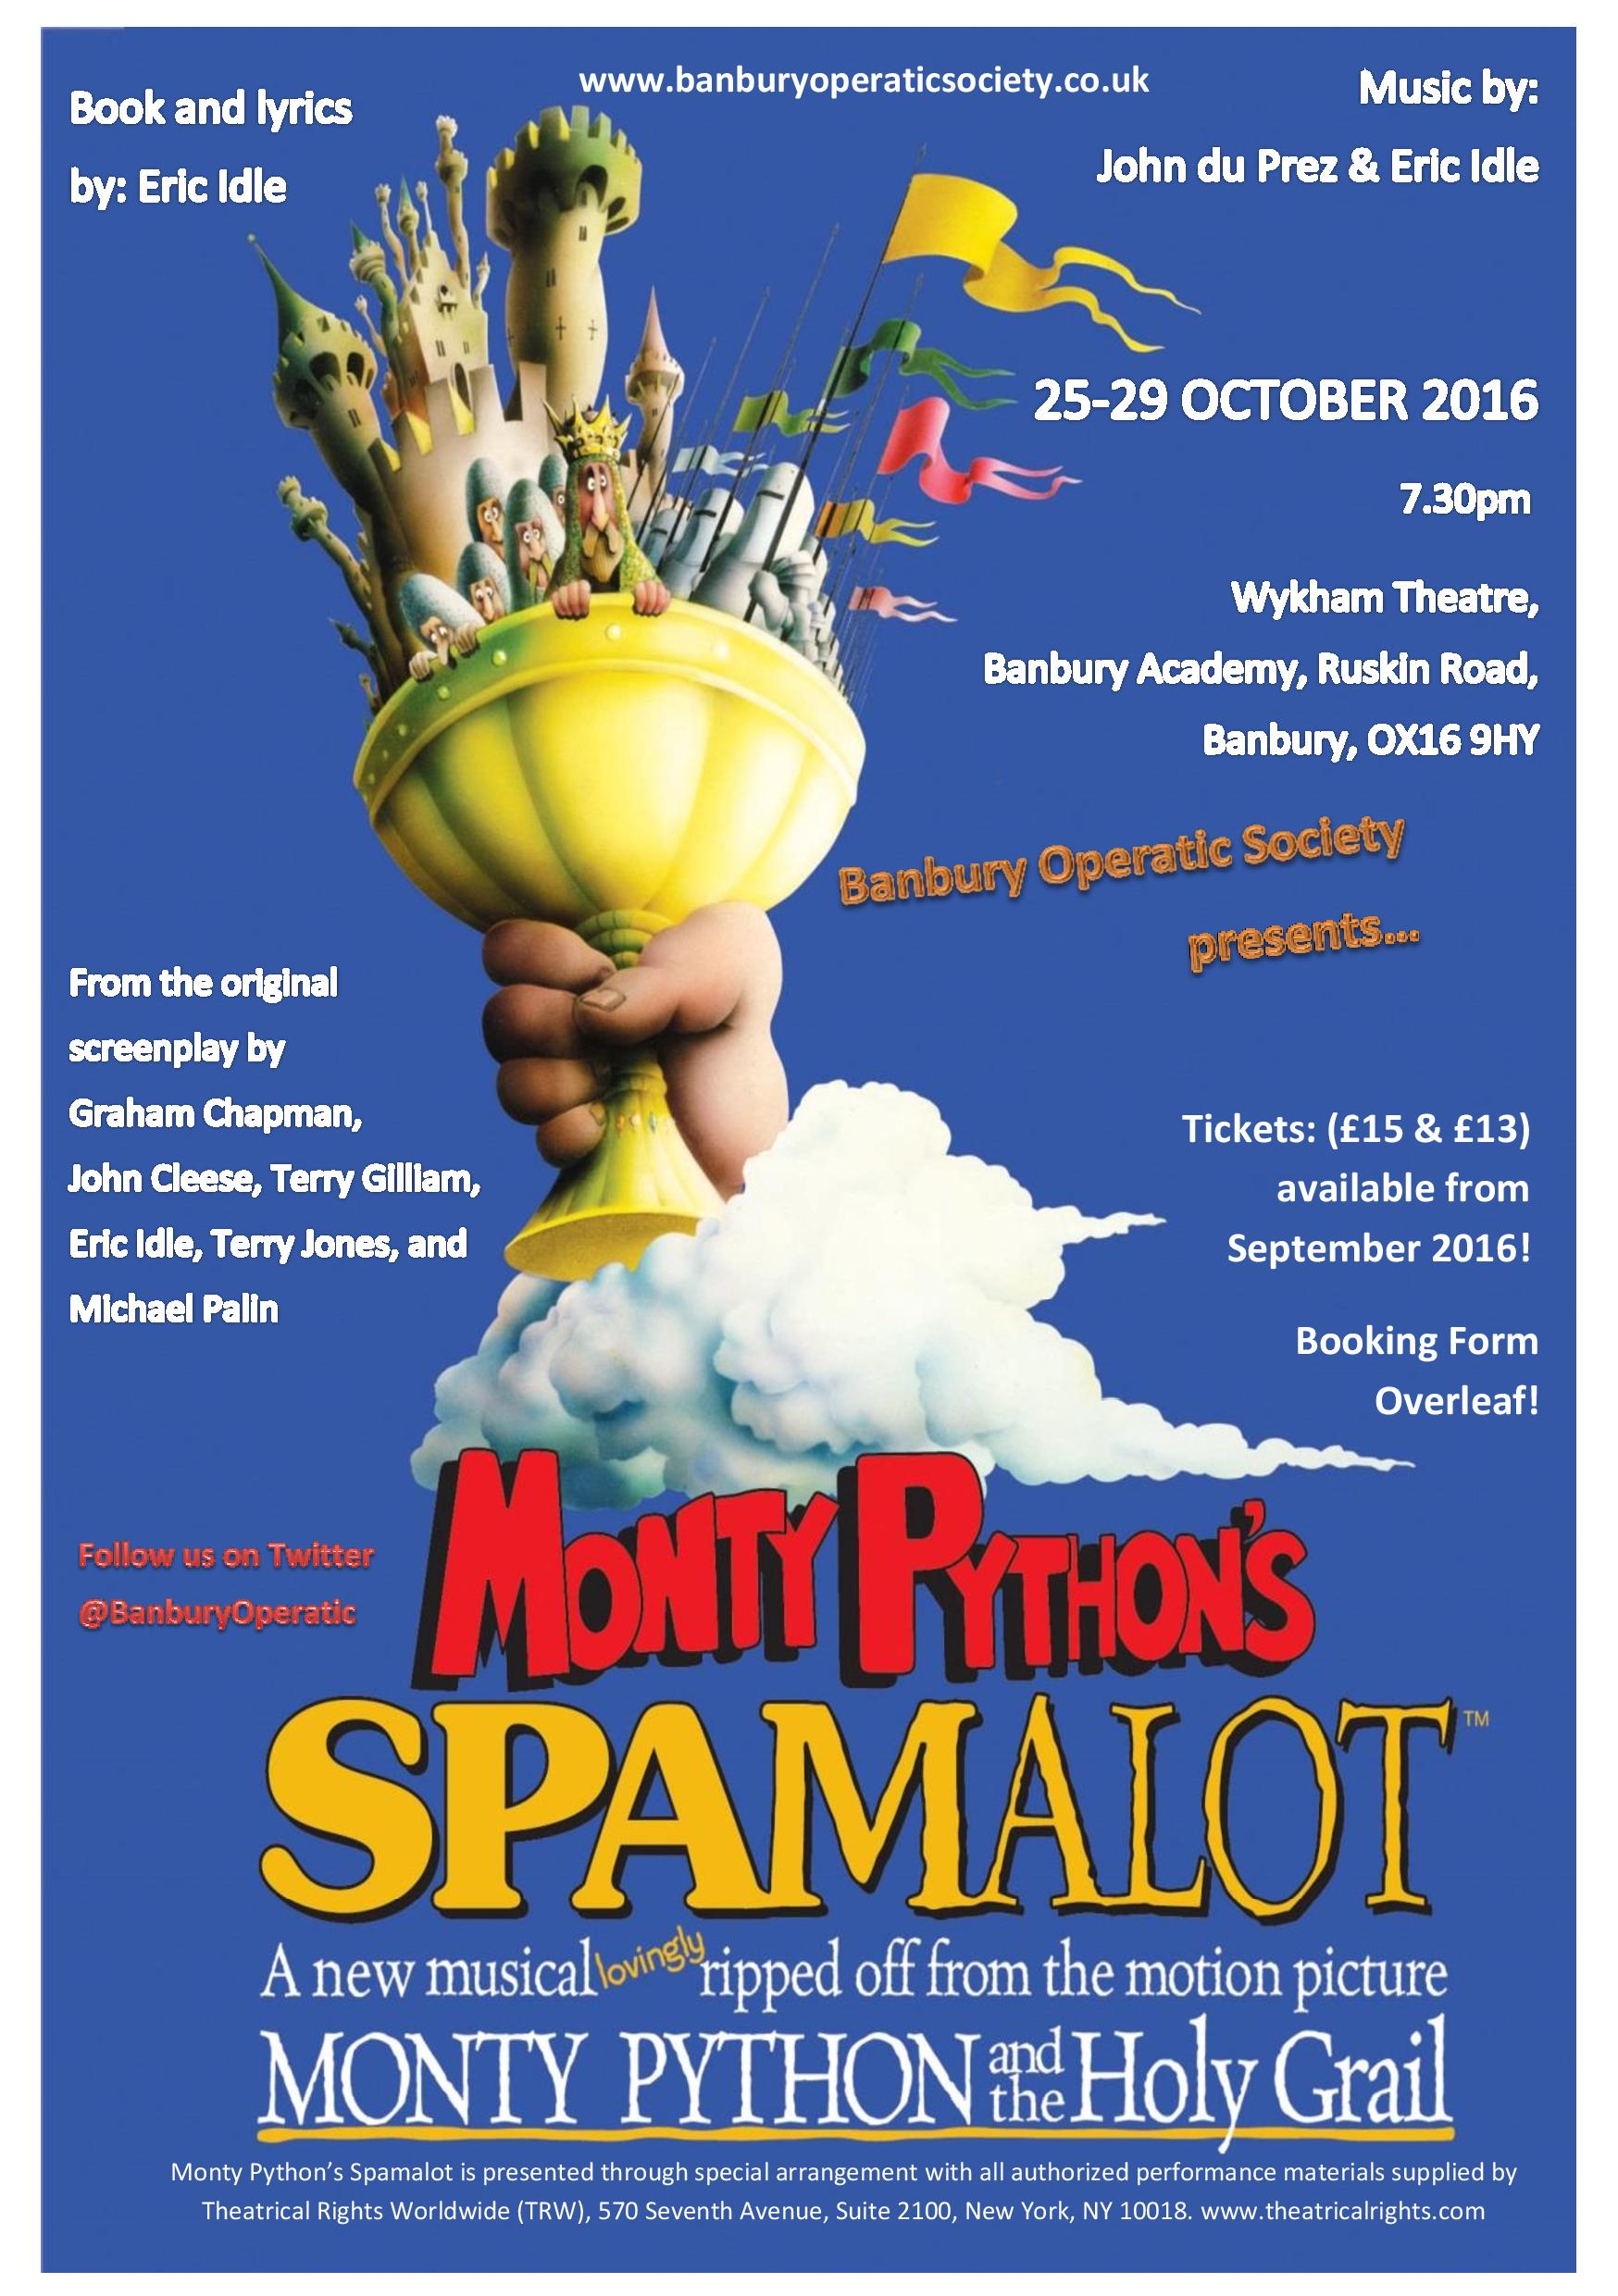 Spamalot - Banbury Operatic Society - Tickets on Sale | Anker and